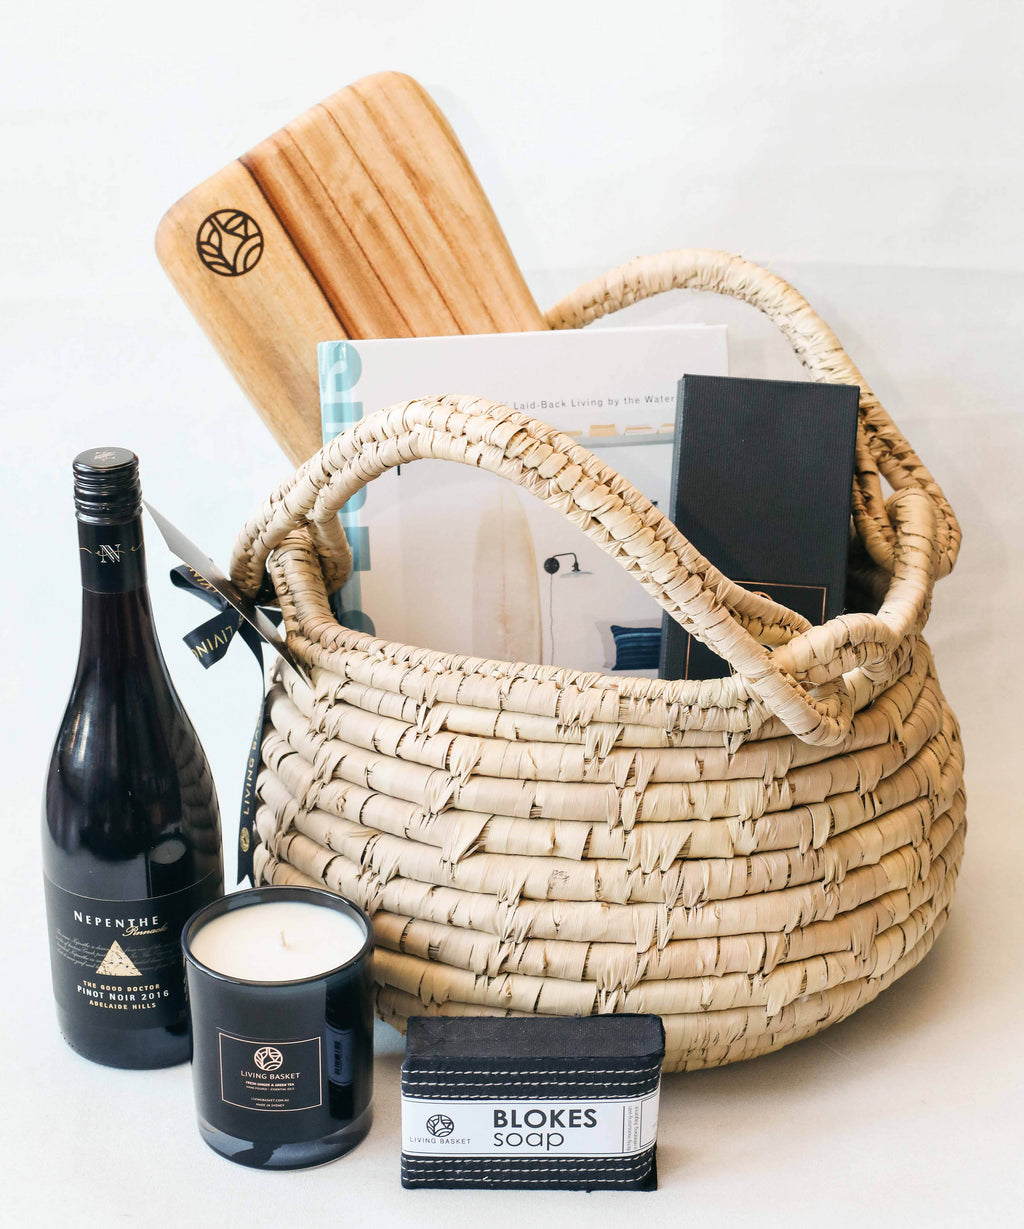 PREMIUM BEACHSIDE FAMILY BASKET WITH BOUTIQUE AUSTRALIAN WINE